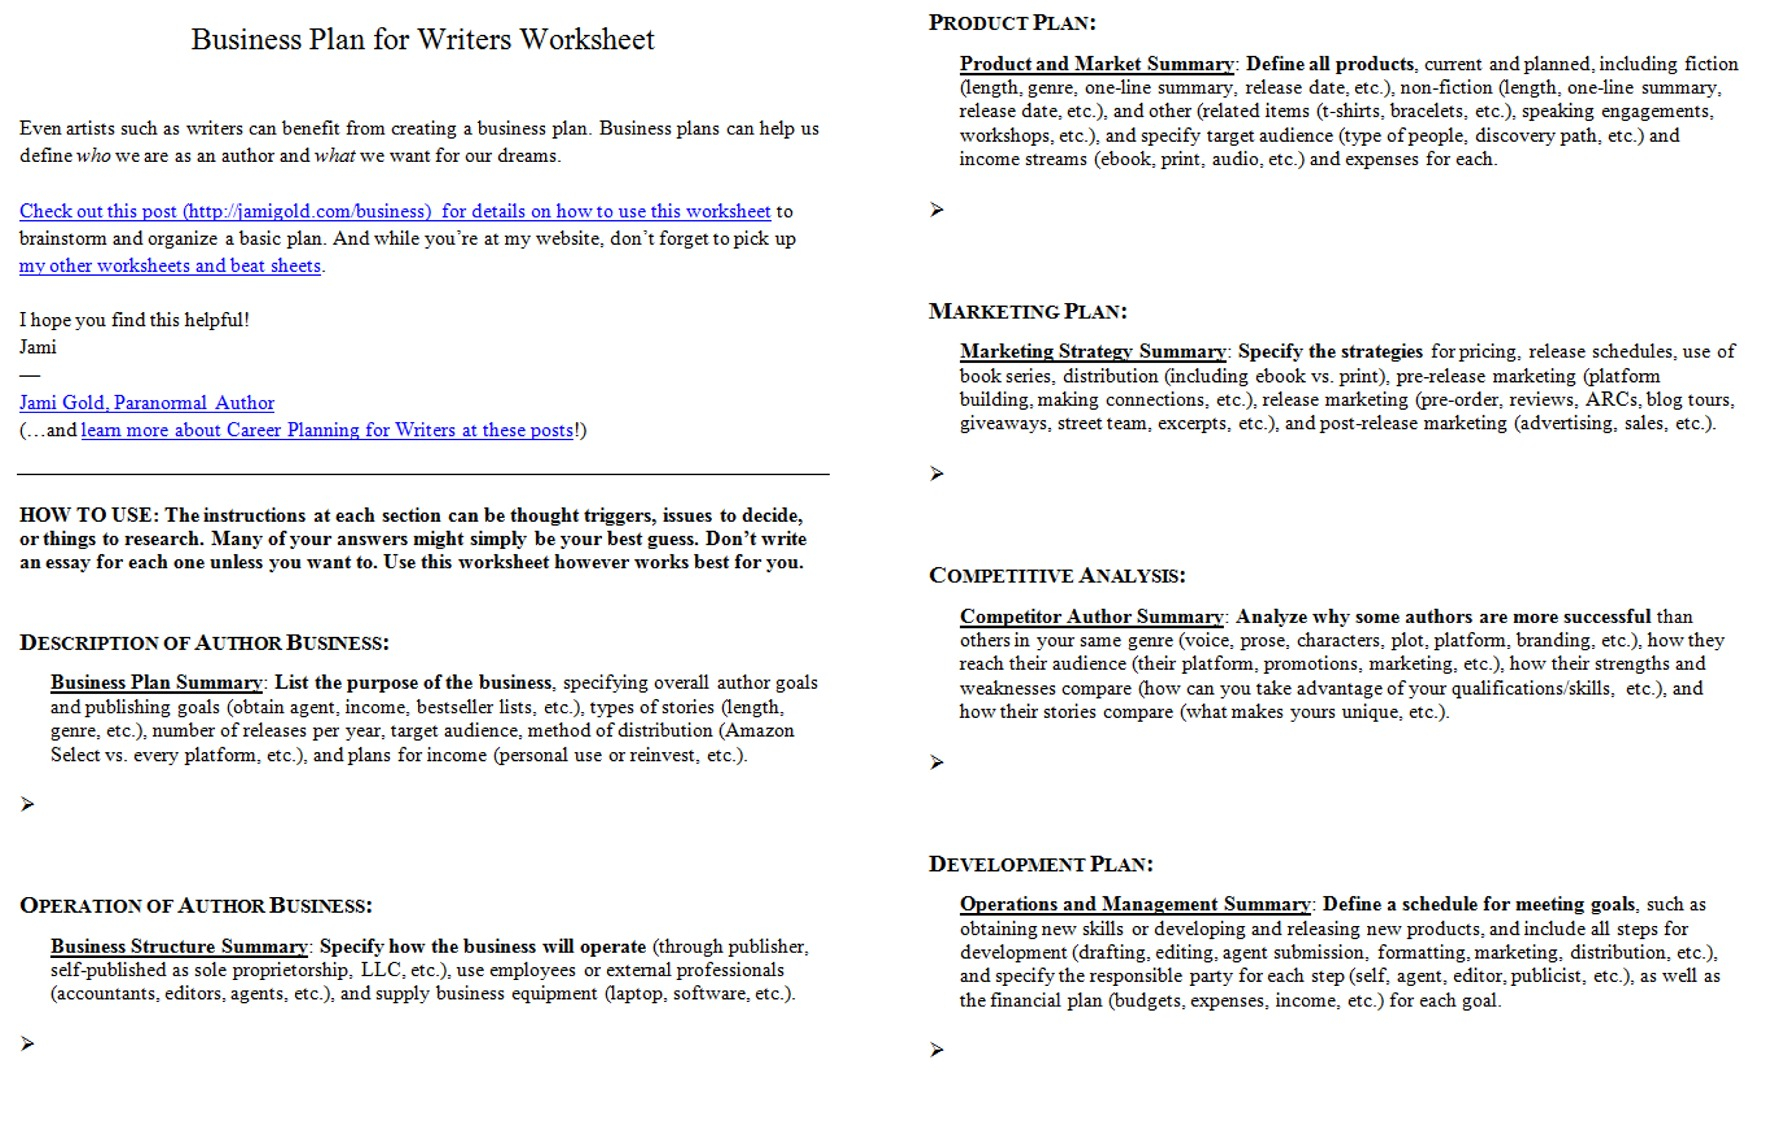 Proatmealus  Fascinating Worksheets For Writers  Jami Gold Paranormal Author With Foxy Screen Shot Of Both Pages Of The Business Plan For Writers Worksheet With Nice Graphing Parabolas In Vertex Form Worksheet Also Simile Worksheets In Addition Pokemon Worksheets And Circuits And Symbols Worksheet Answers As Well As America The Story Of Us Rebels Worksheet Answers Additionally Graphing Rational Functions Worksheet  Answers From Jamigoldcom With Proatmealus  Foxy Worksheets For Writers  Jami Gold Paranormal Author With Nice Screen Shot Of Both Pages Of The Business Plan For Writers Worksheet And Fascinating Graphing Parabolas In Vertex Form Worksheet Also Simile Worksheets In Addition Pokemon Worksheets From Jamigoldcom